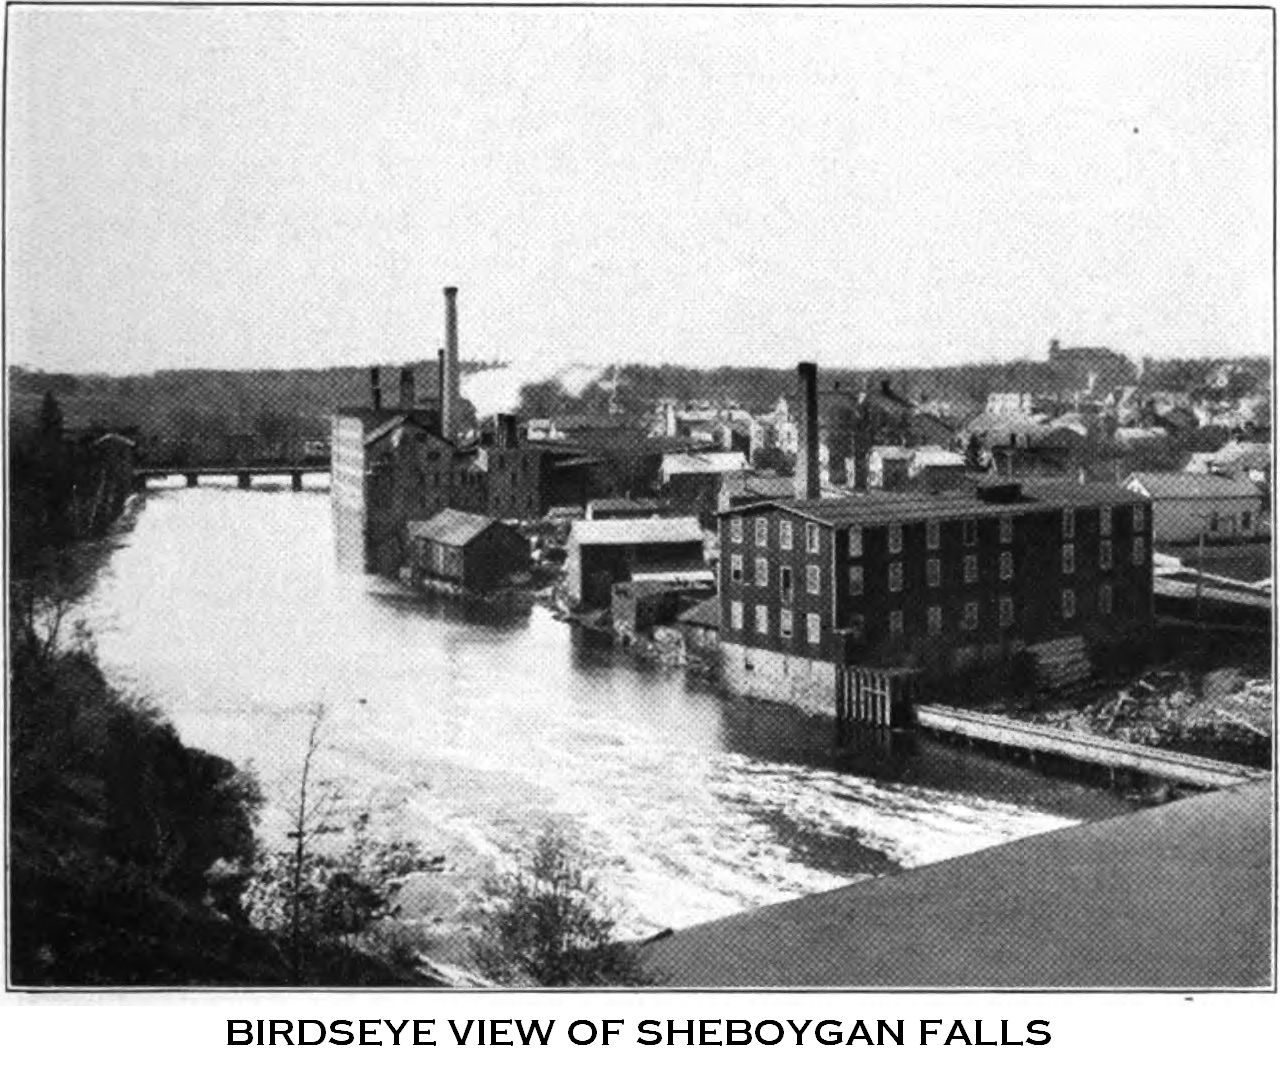 Birdseye View of Sheboygan Falls